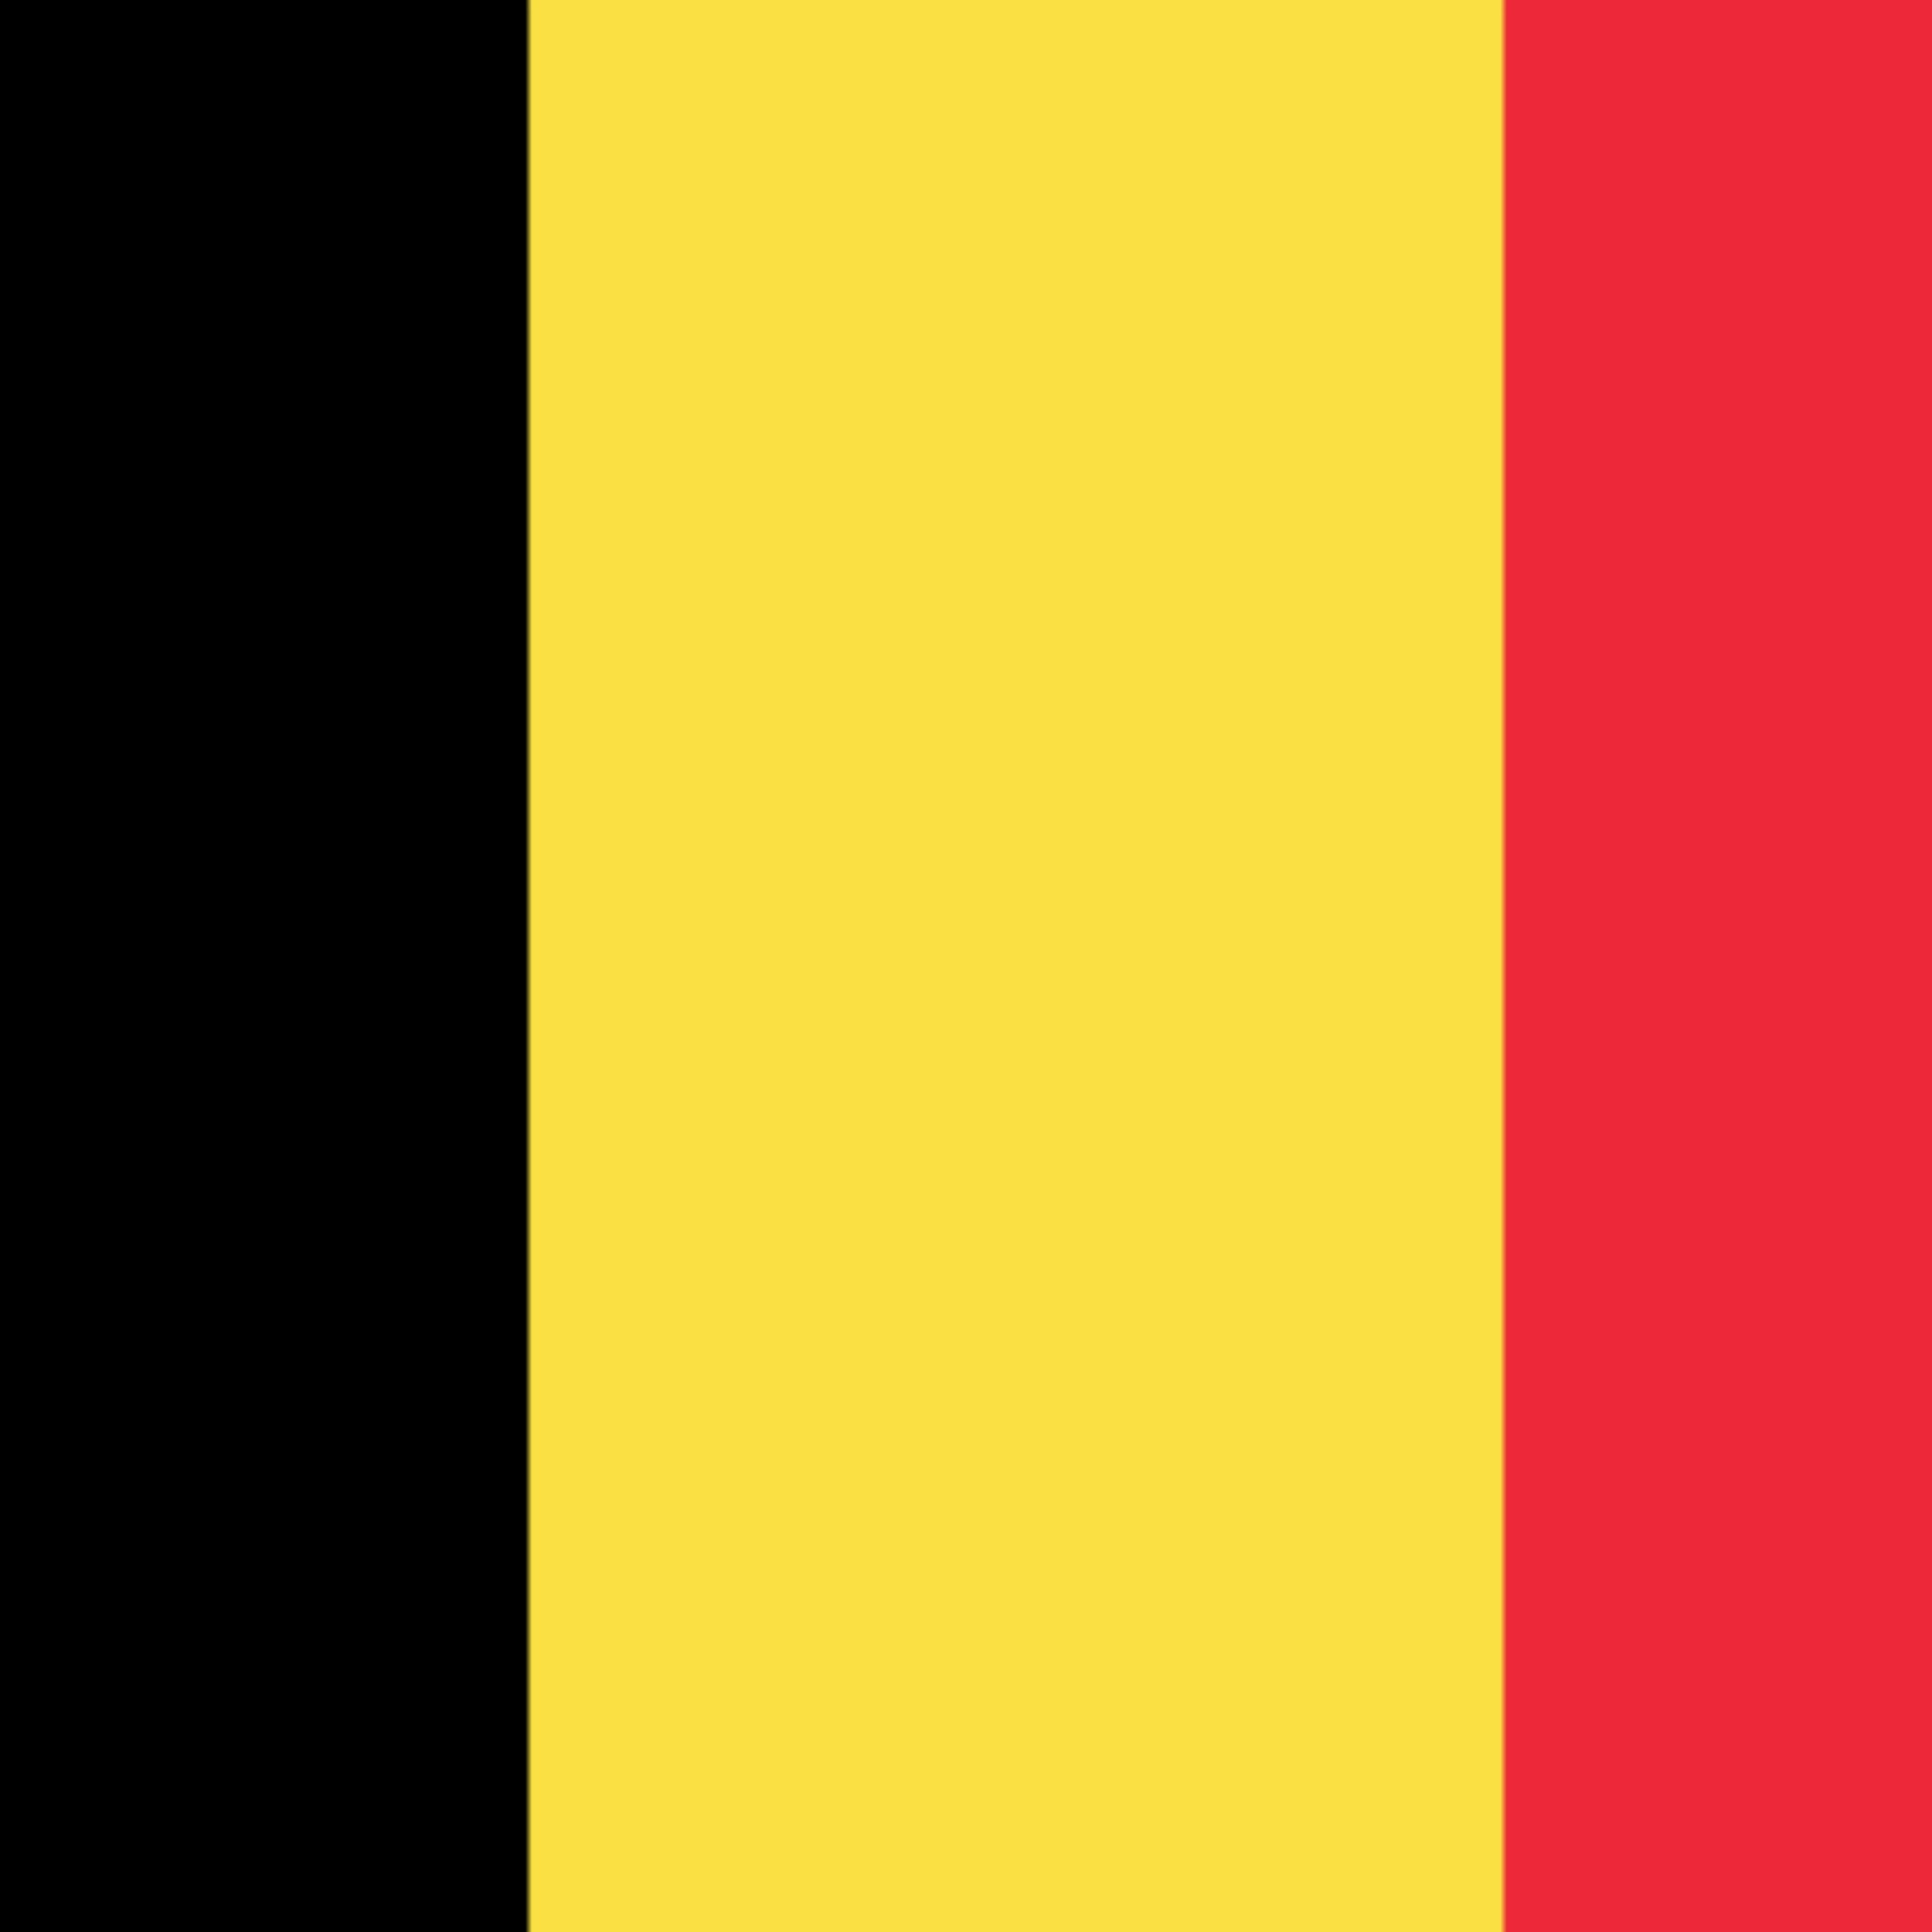 Honorary Consulate of Belgium (Valencia)